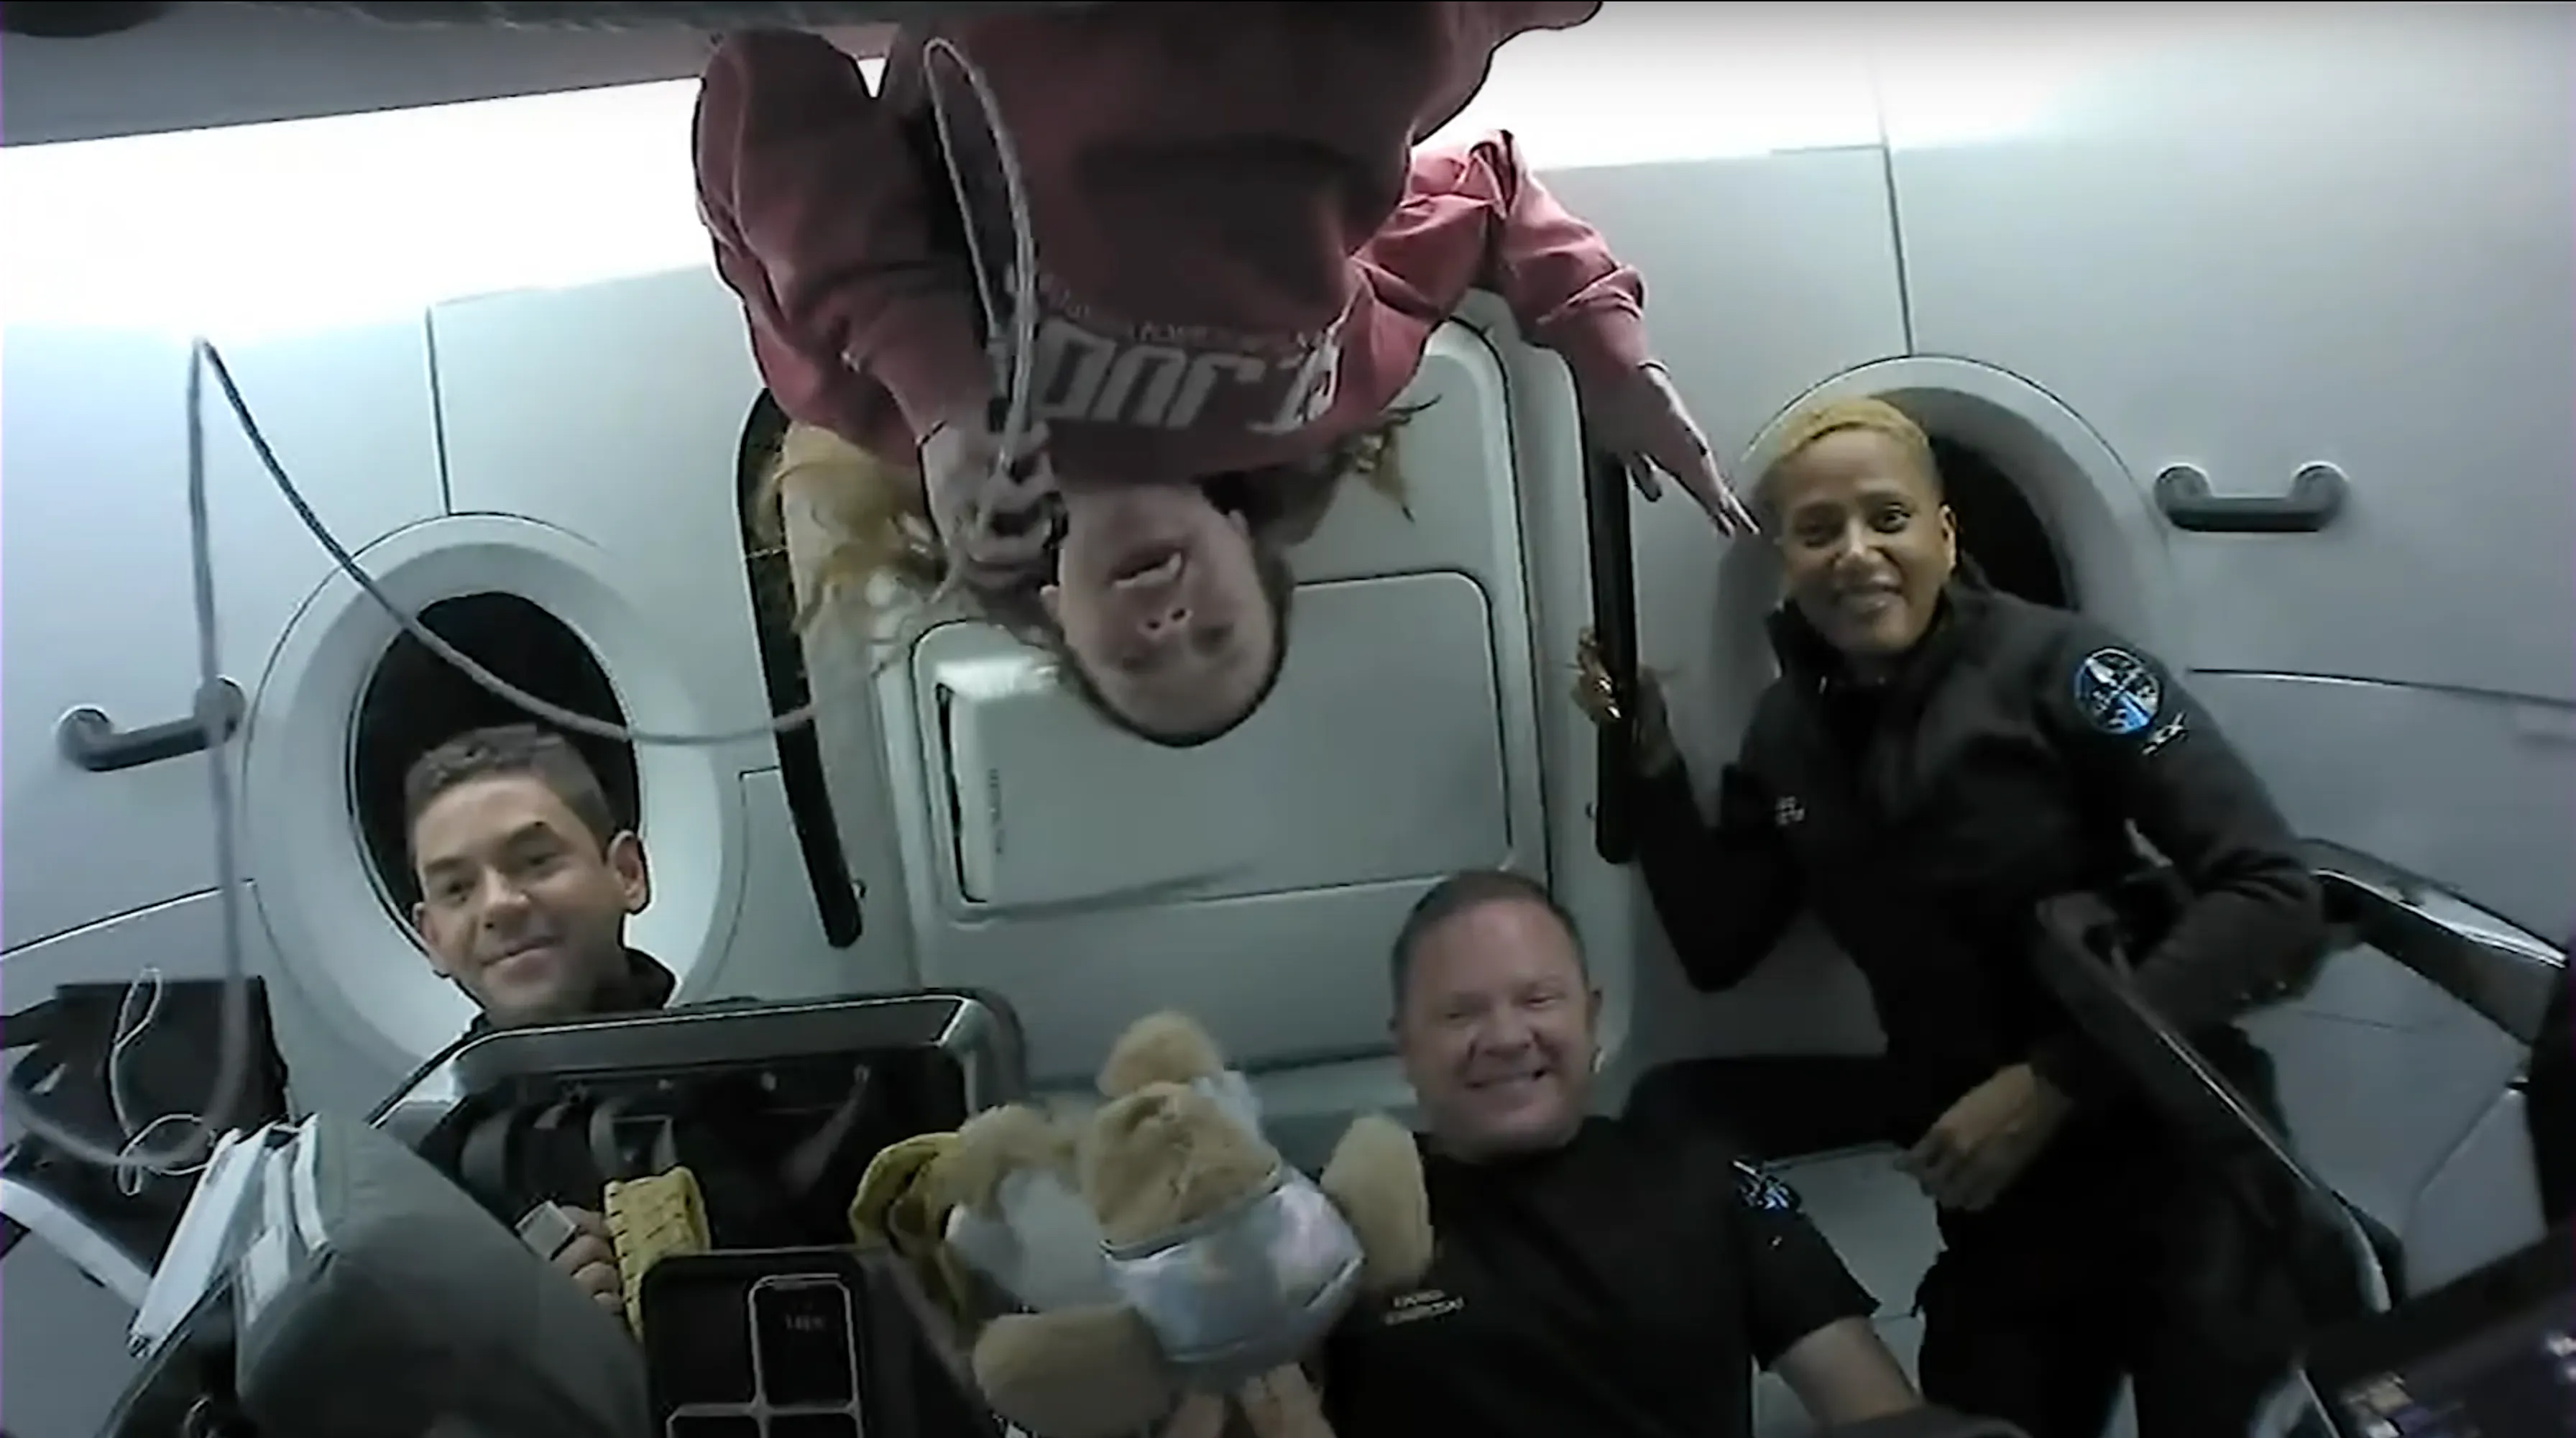 The crew of SpaceX's Inspiration4 mission speak with St. Jude Children's Research Hospital patients from space during their mission.